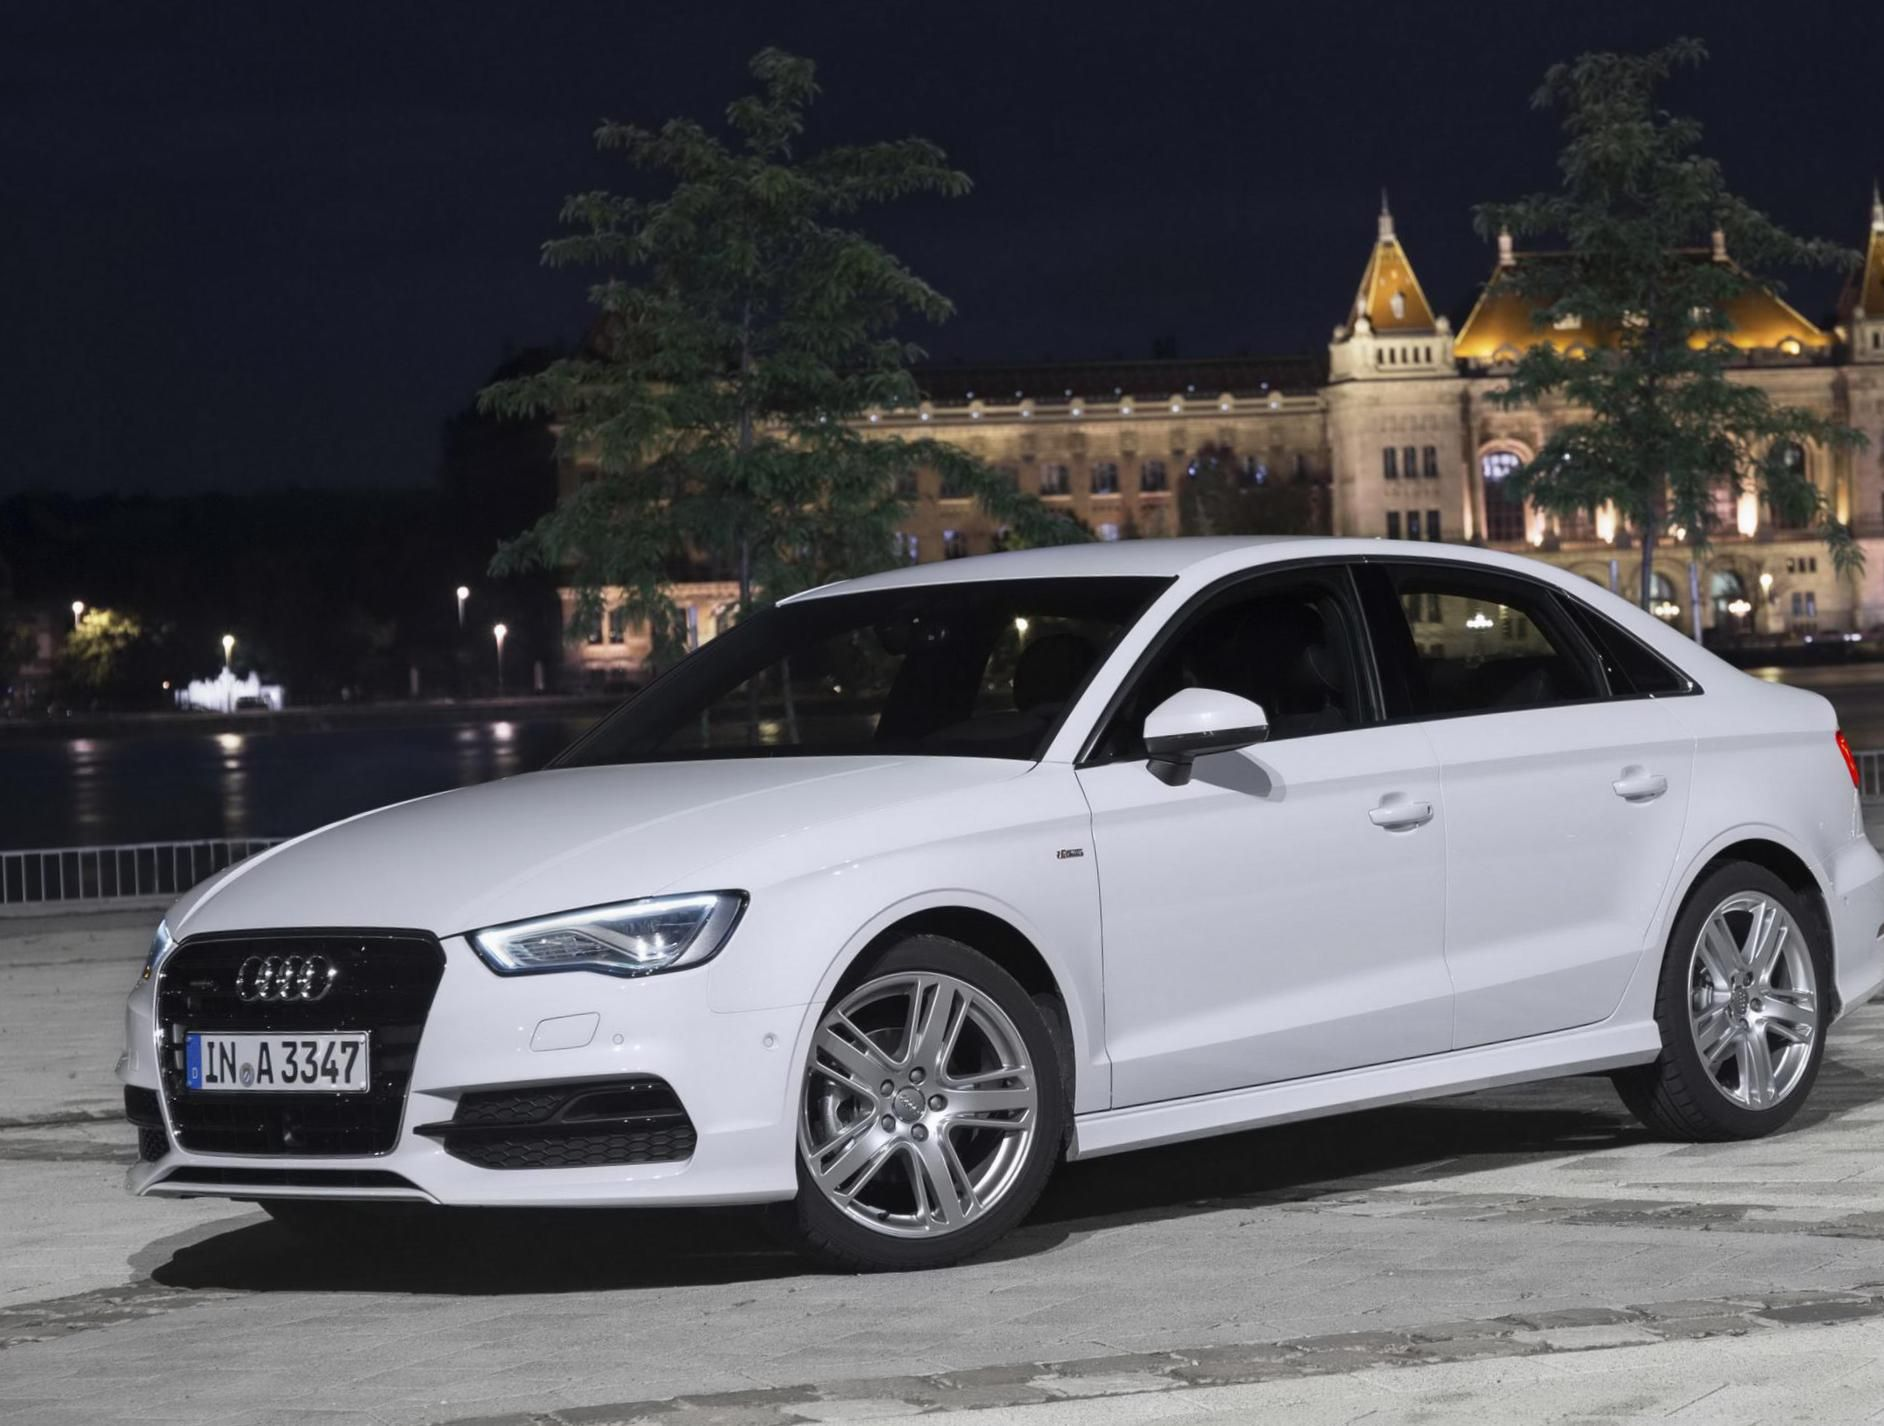 Audi a3 5 door sportback 2 0 tdi 150 s line leasing l audis pinterest audi a3 audi and cars